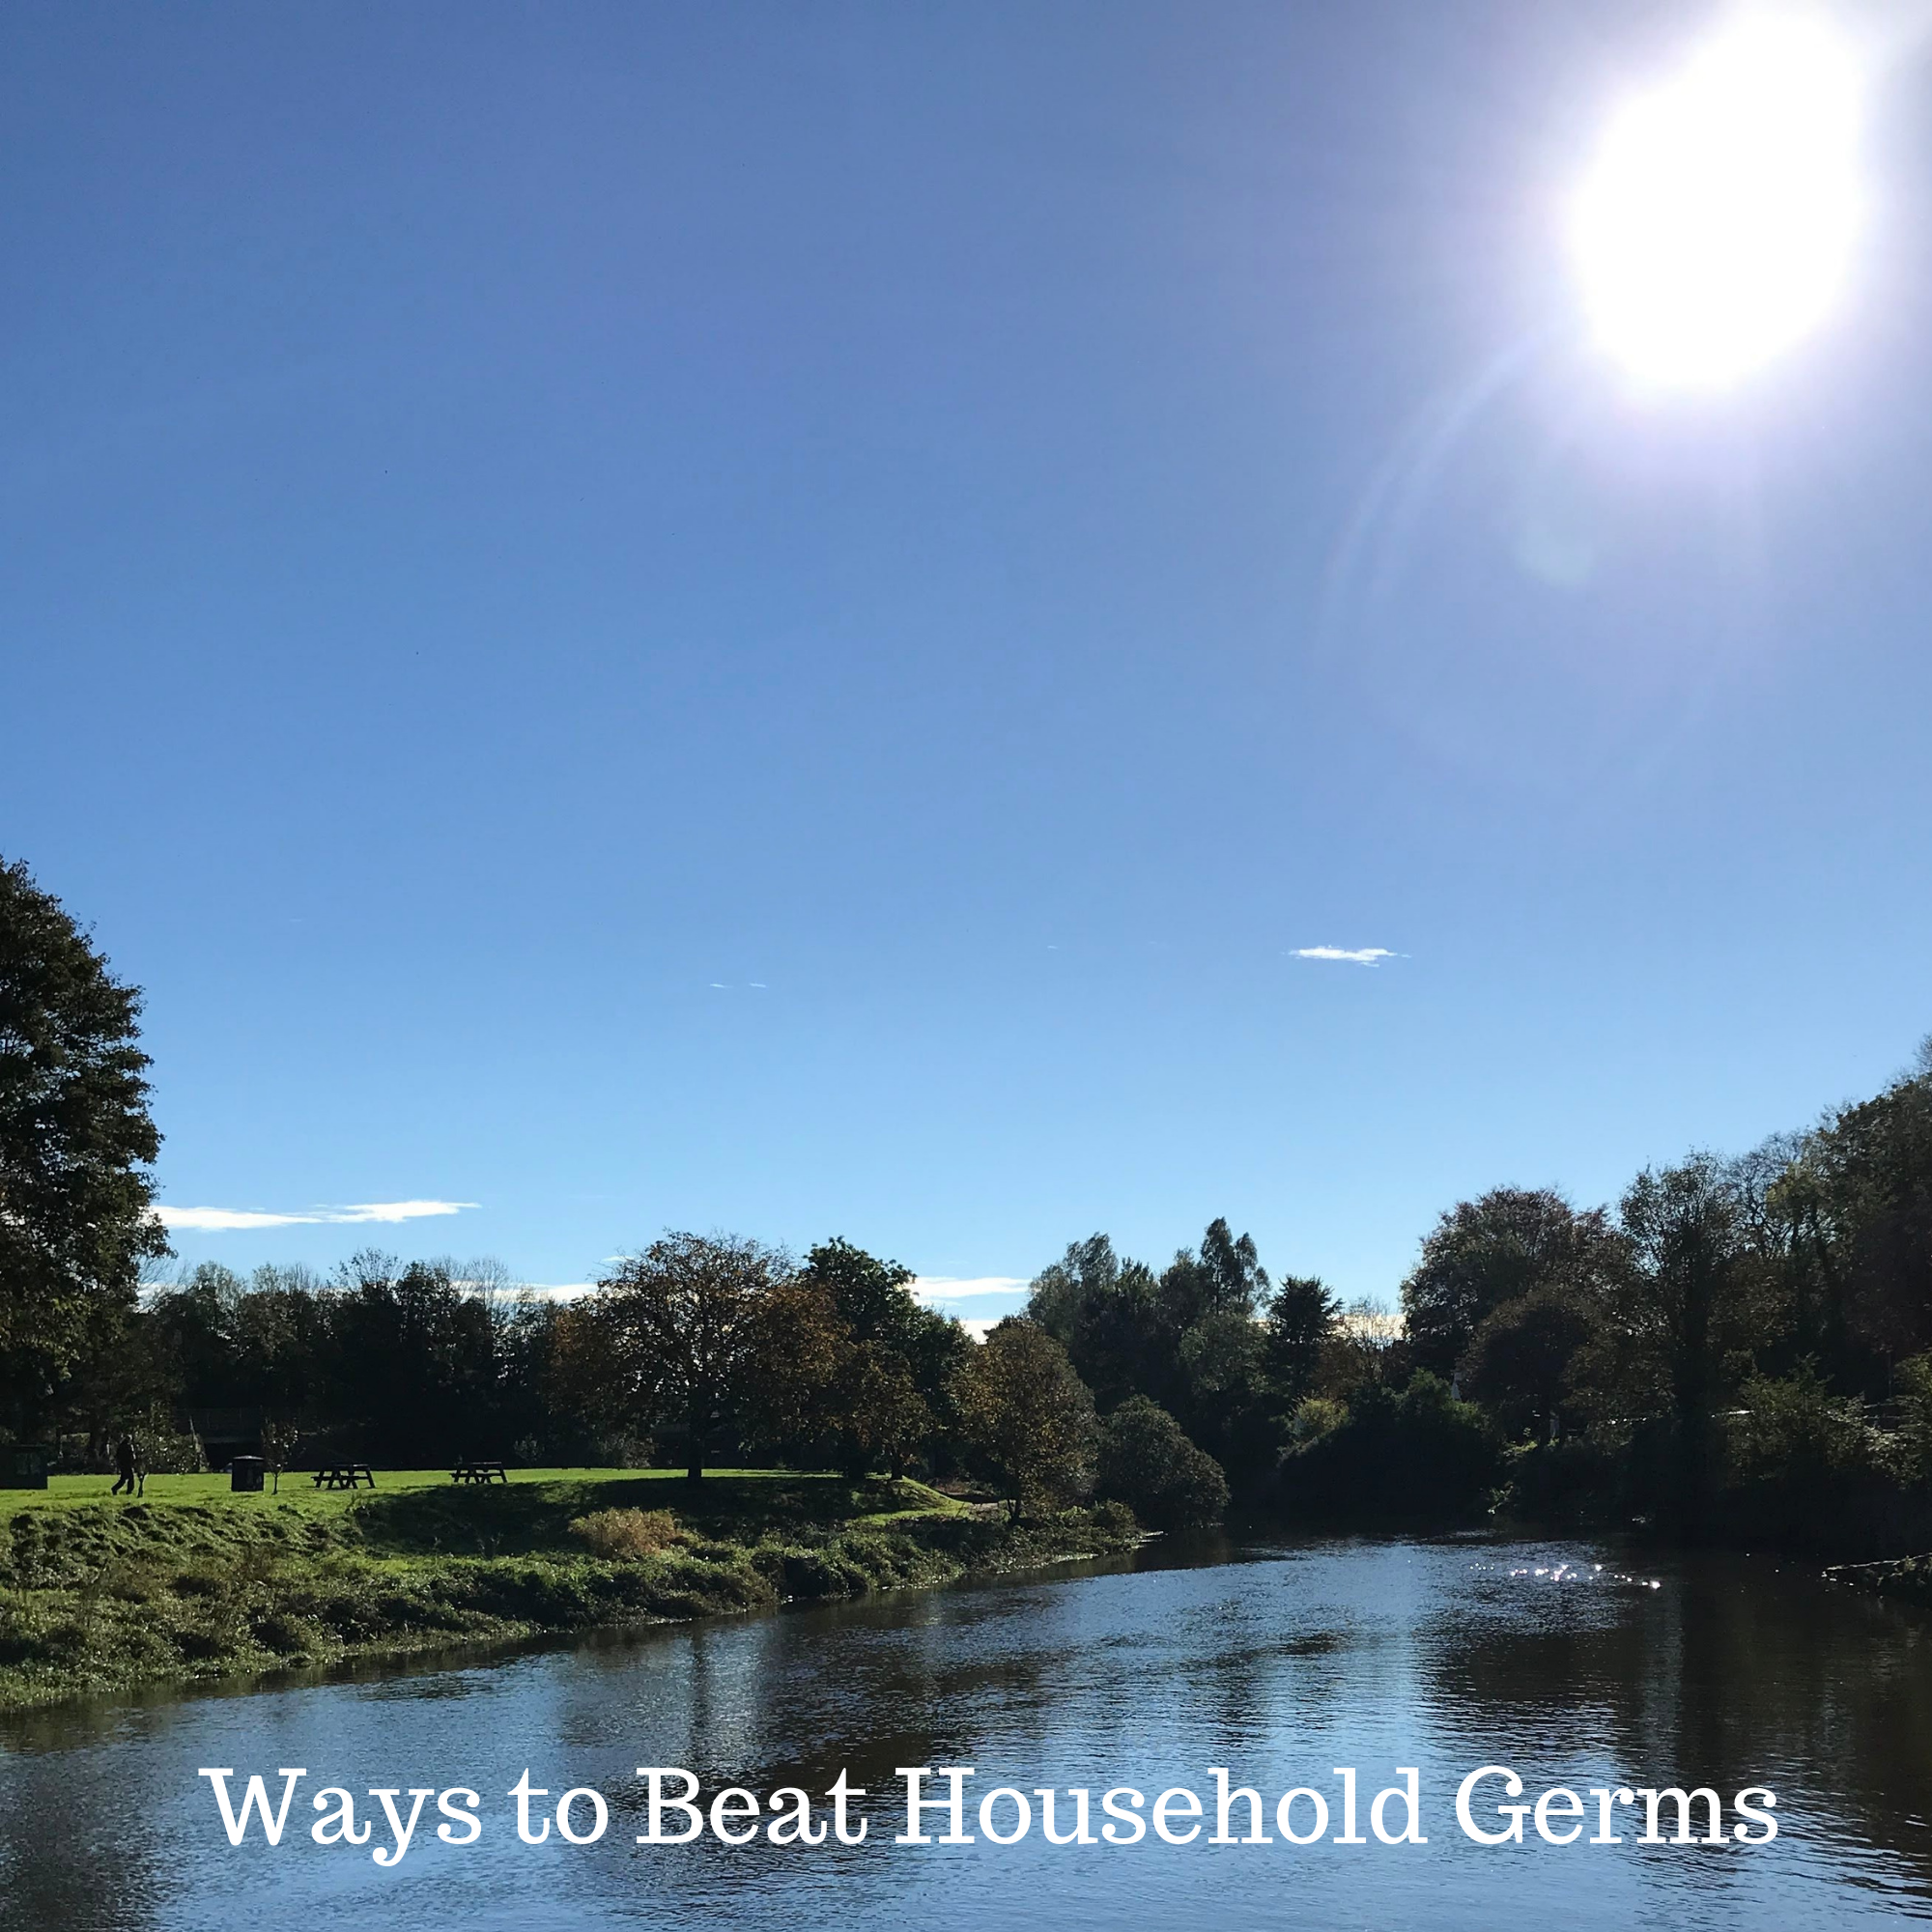 Ways to Beat Household Germs